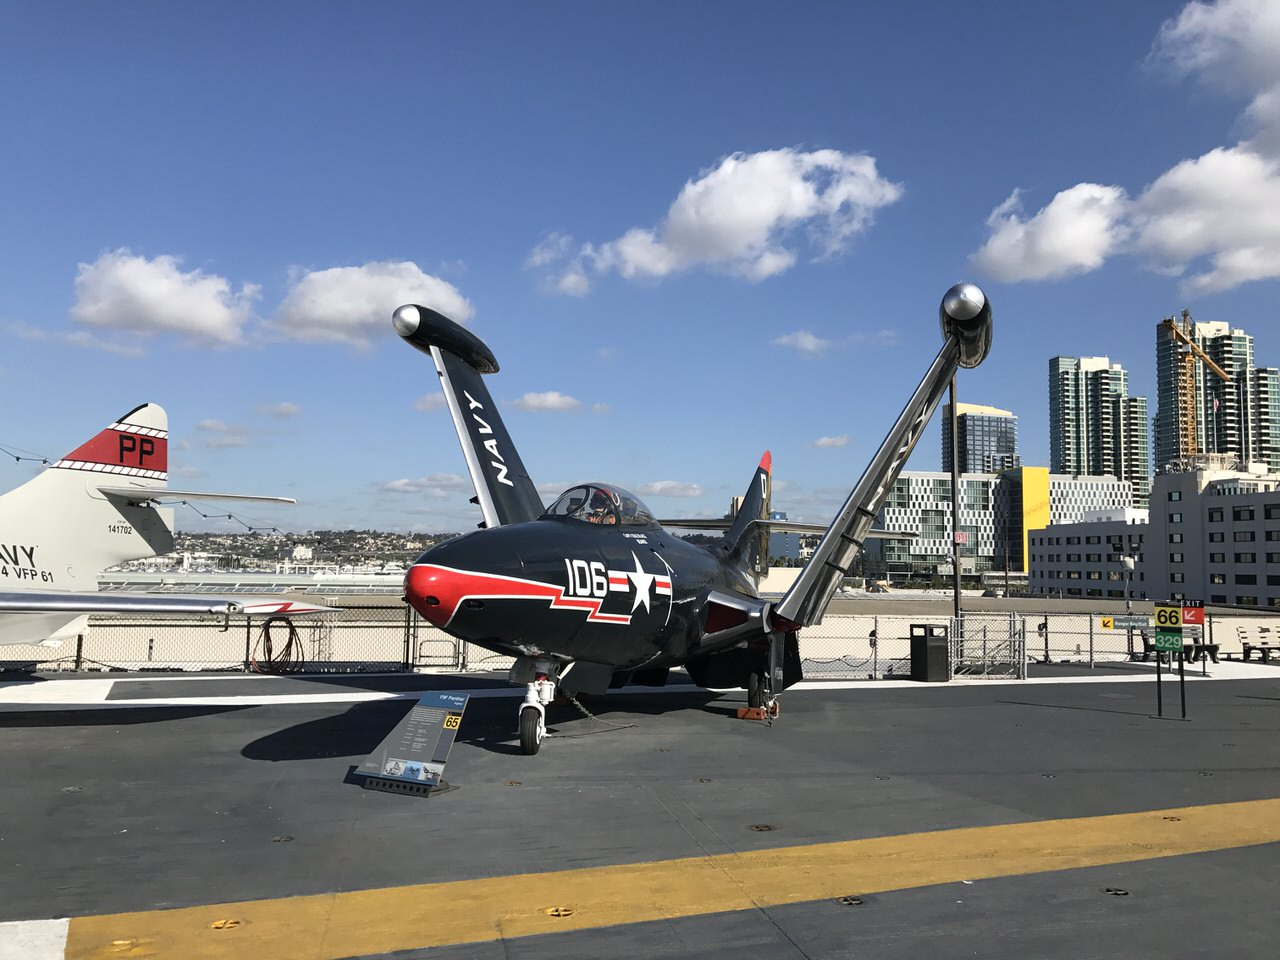 Uss midway museum 0563